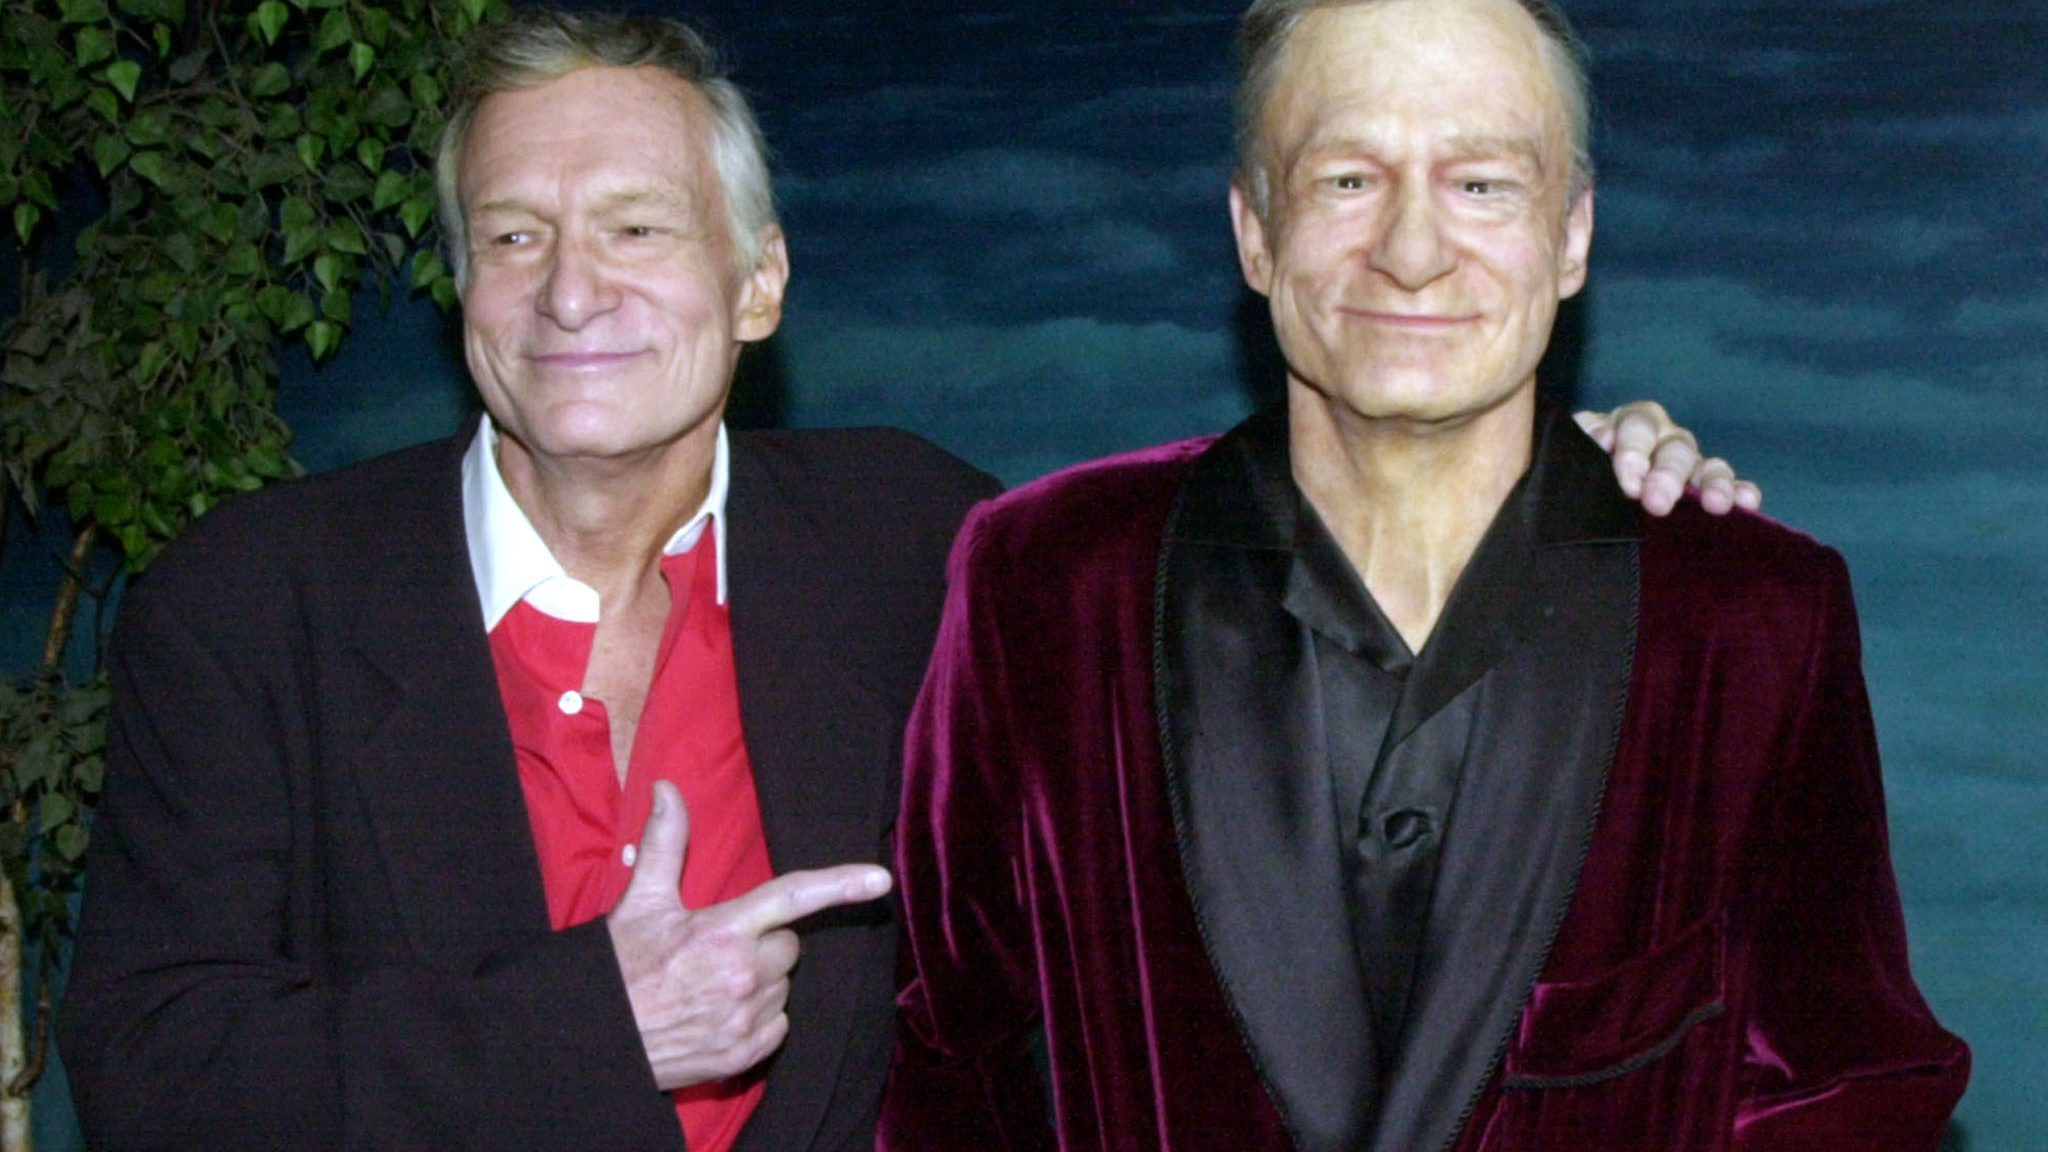 Hugh M. Hefner points as he poses next to a wax figure of himself February 20, 2001 during an unveiling ceremony at the Hollywood Wax Museum in Los Angeles. The wax figure will be enshrined in the museum to kick off a series of celebrations leading up to his 75th birthday in April.